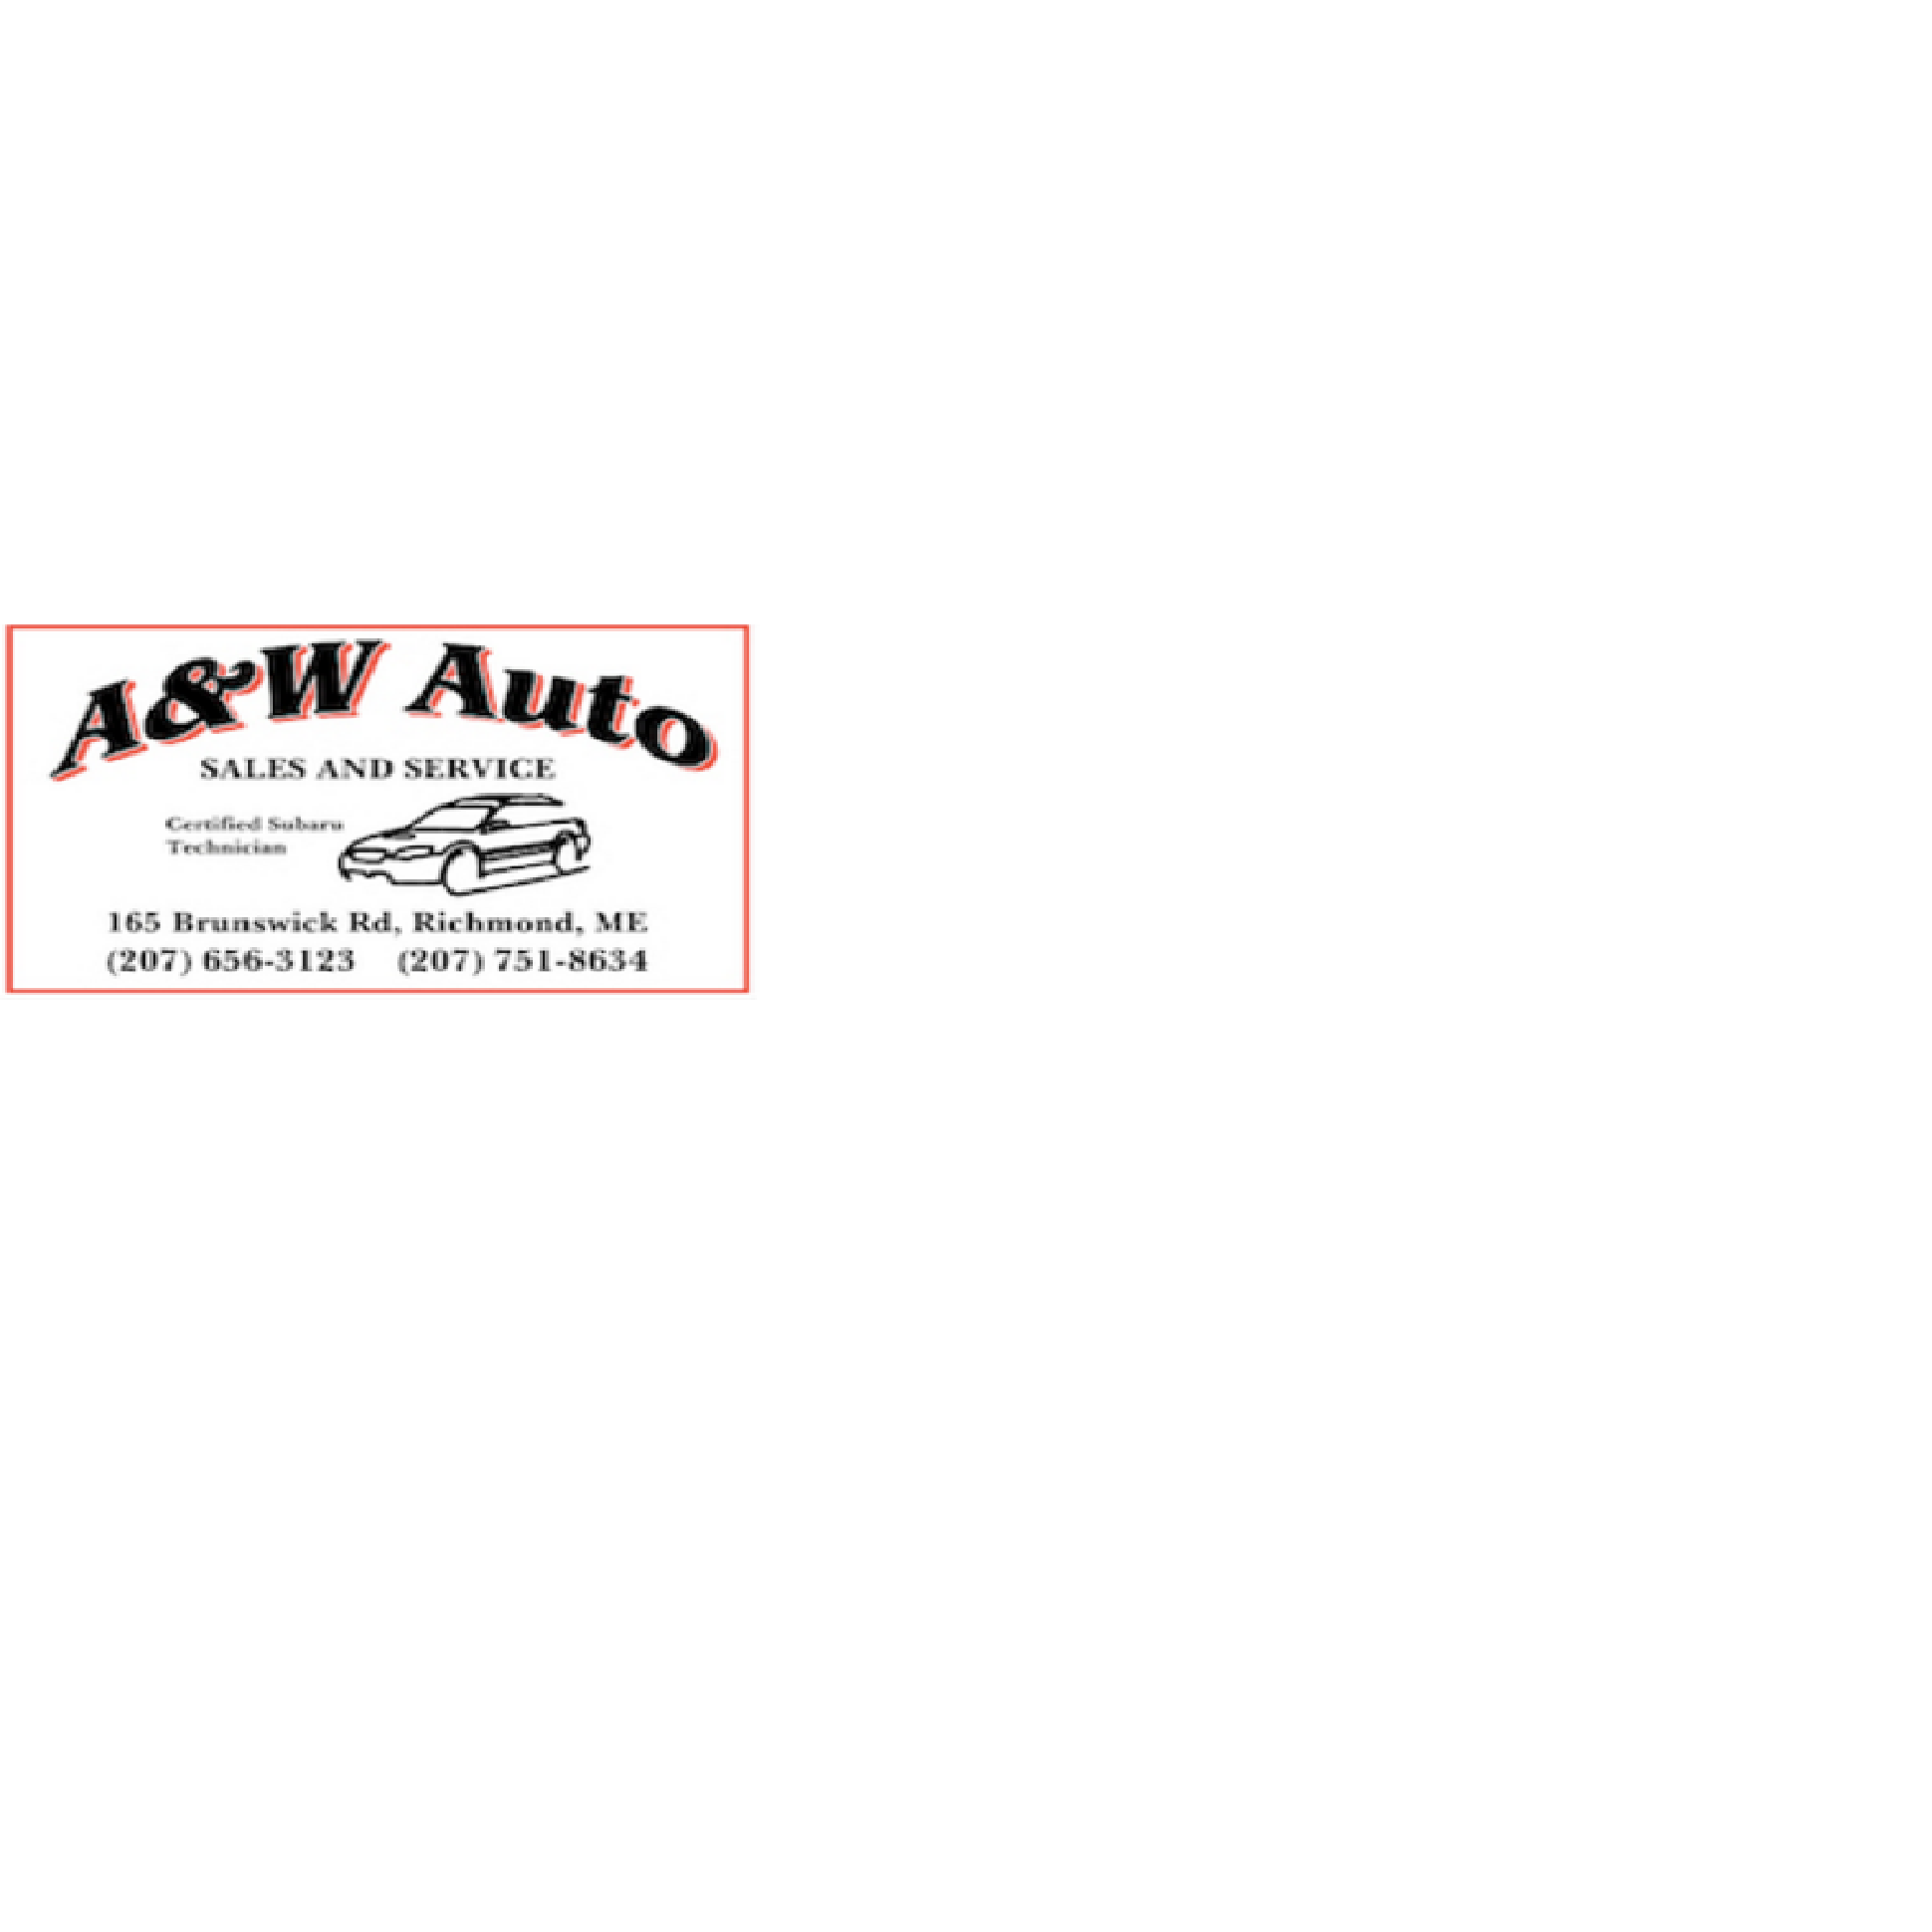 A&W Auto Sales and Service